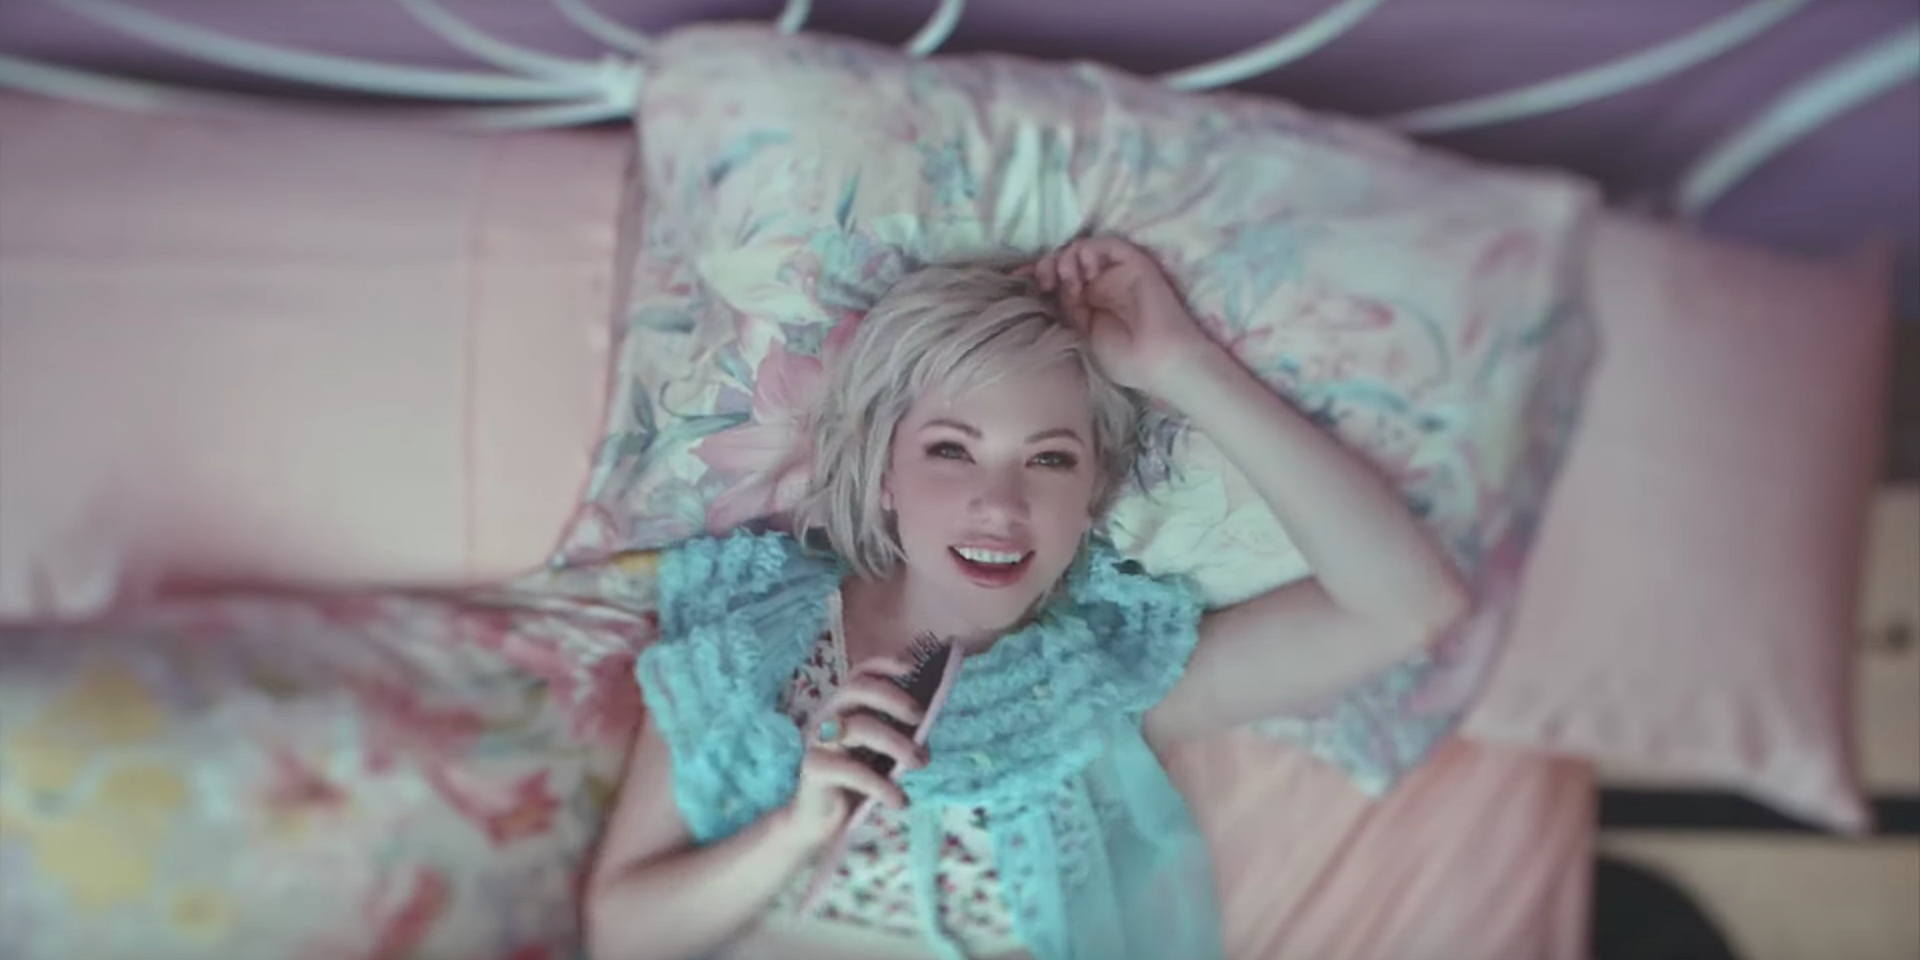 Carly Rae Jepsen unveils fun music video for 'Want You In My Room'